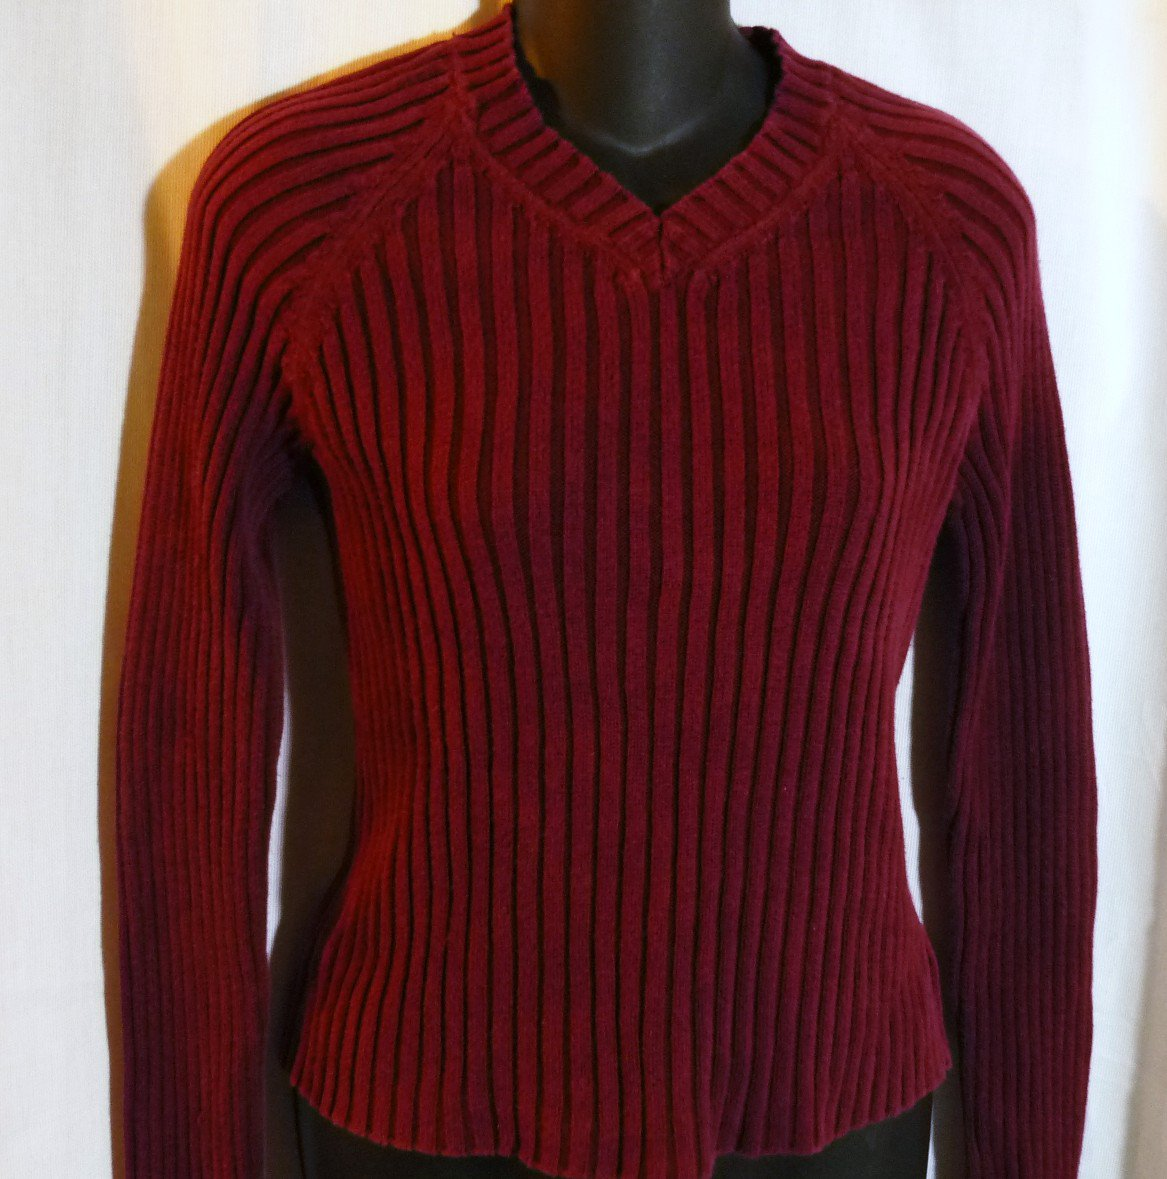 Old Navy V Neck Long Sleeve Ribbed Cranberry Top Ladies Teens Size Medium - Lk New